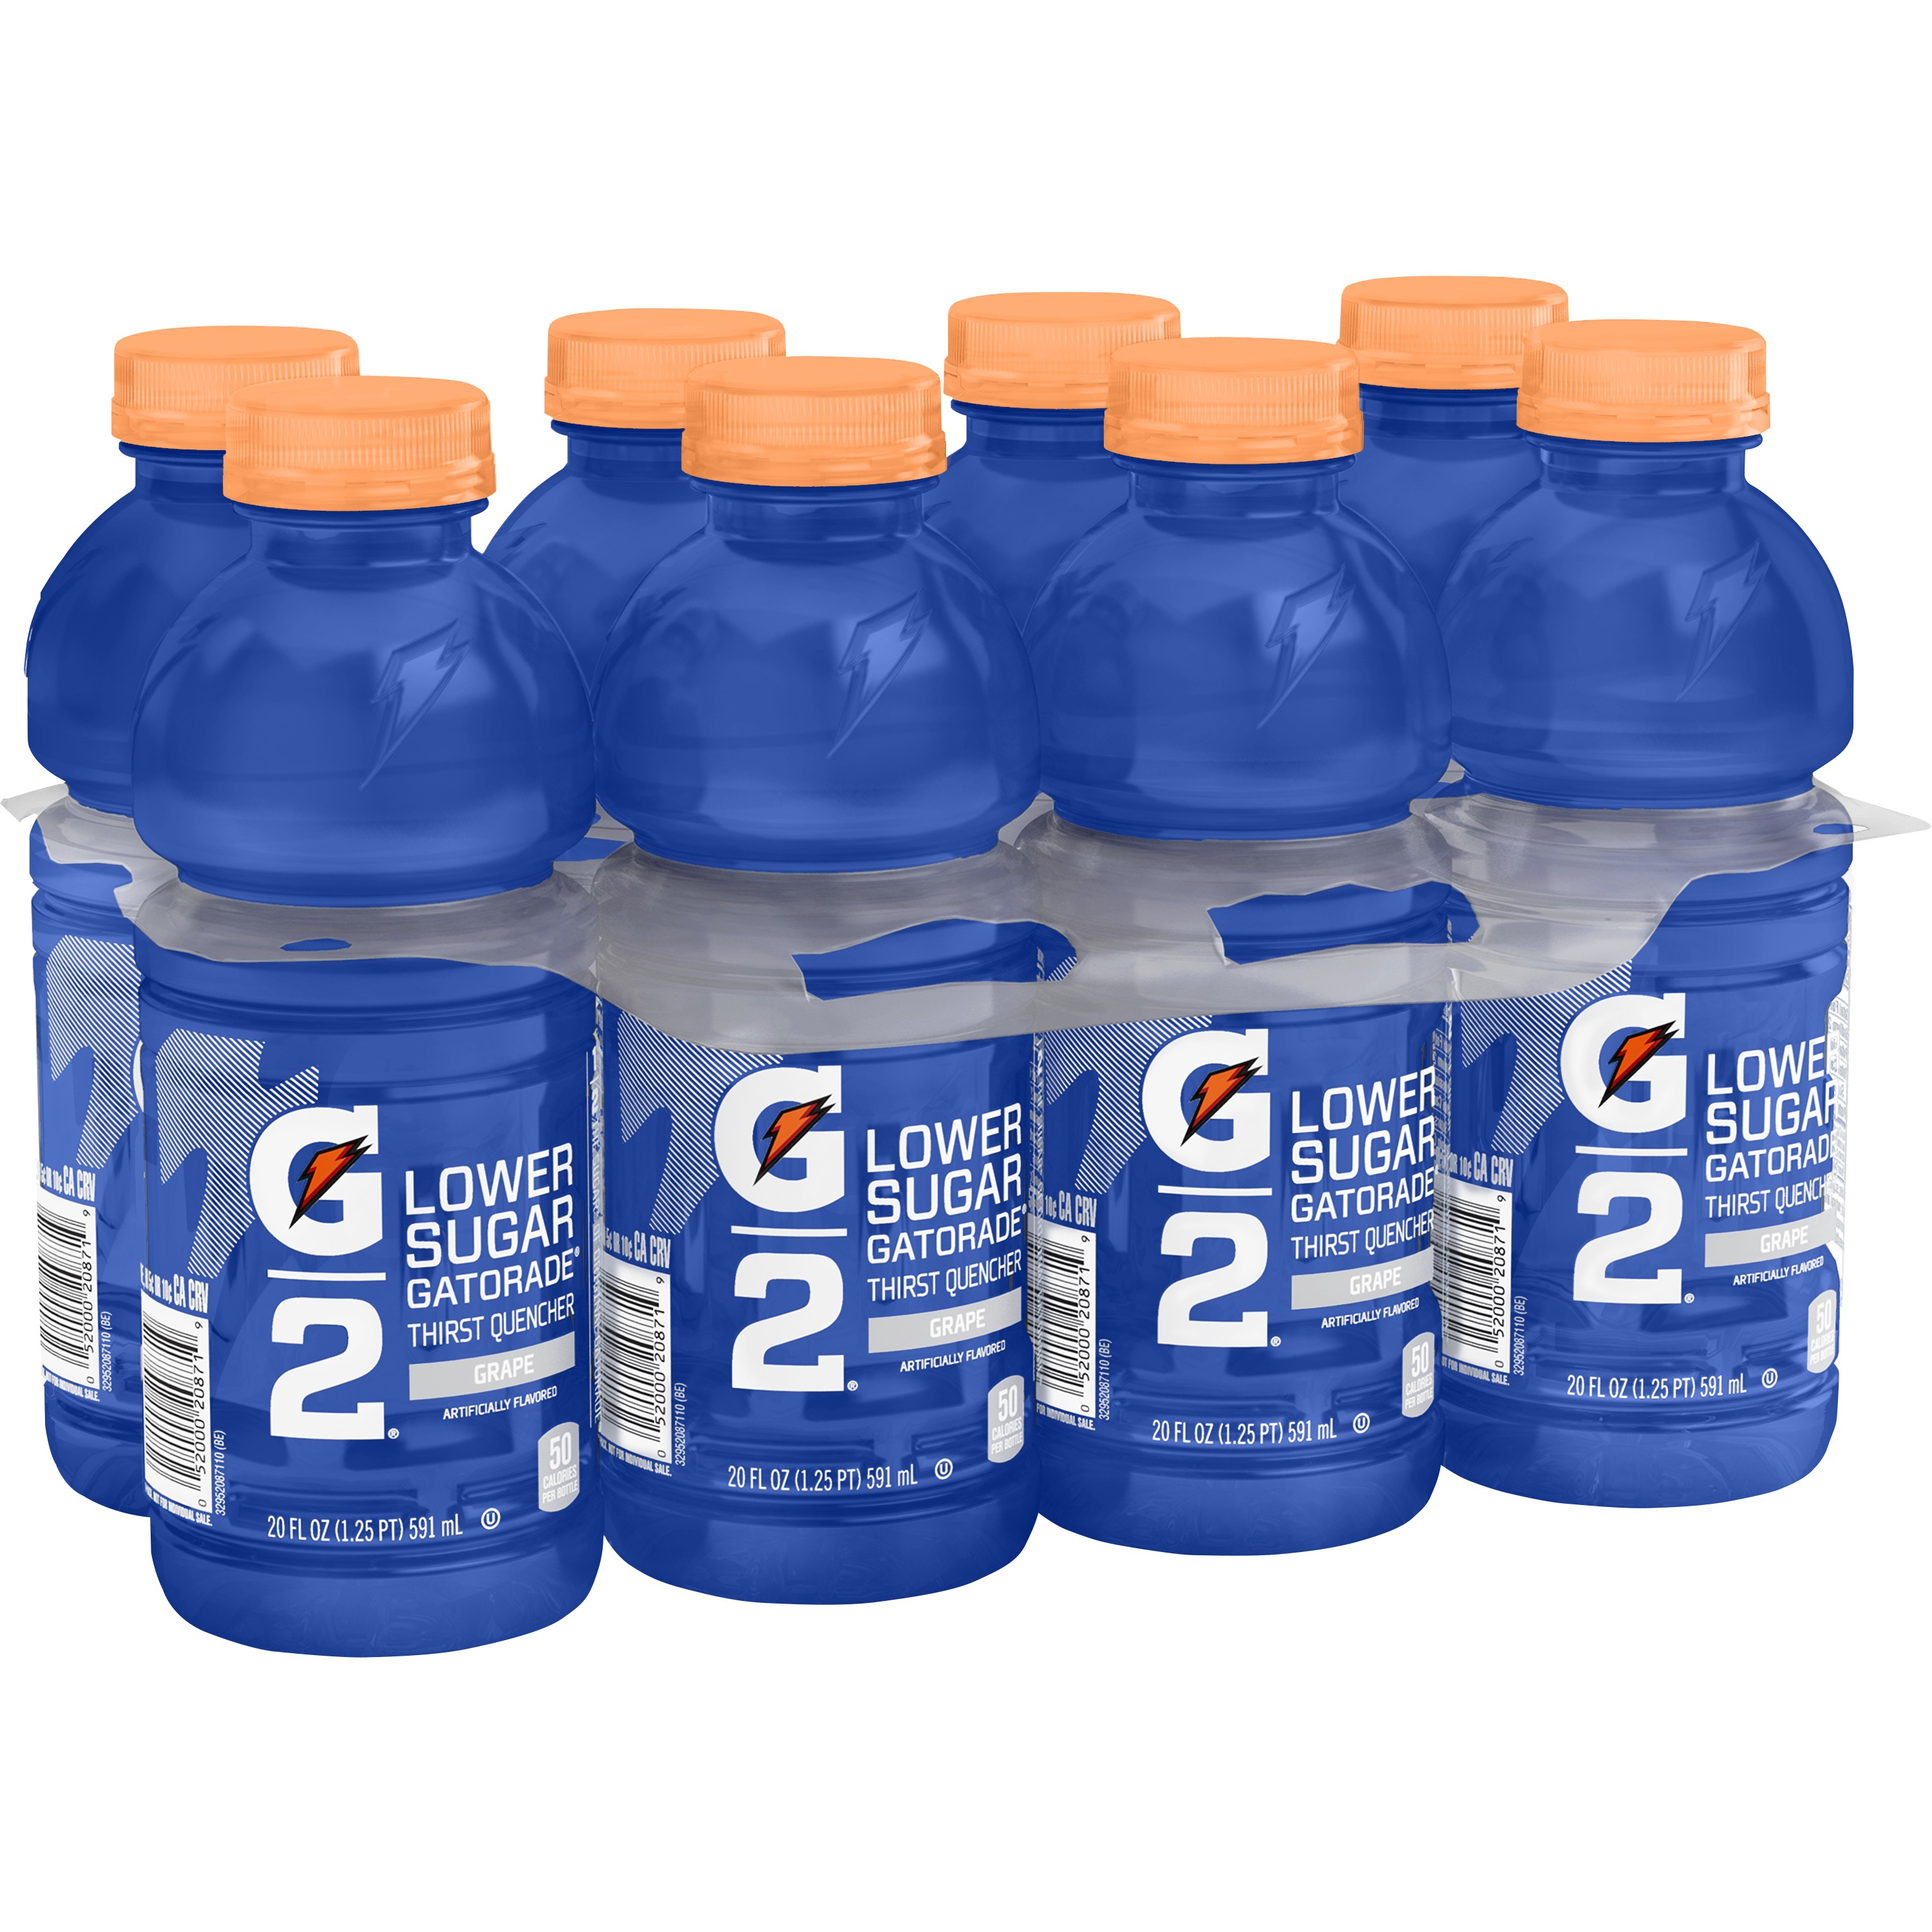 G2 Lower Sugar Gatorade Thirst Quencher Sports Drink, Grape, 20 Fl Oz, 8 Count